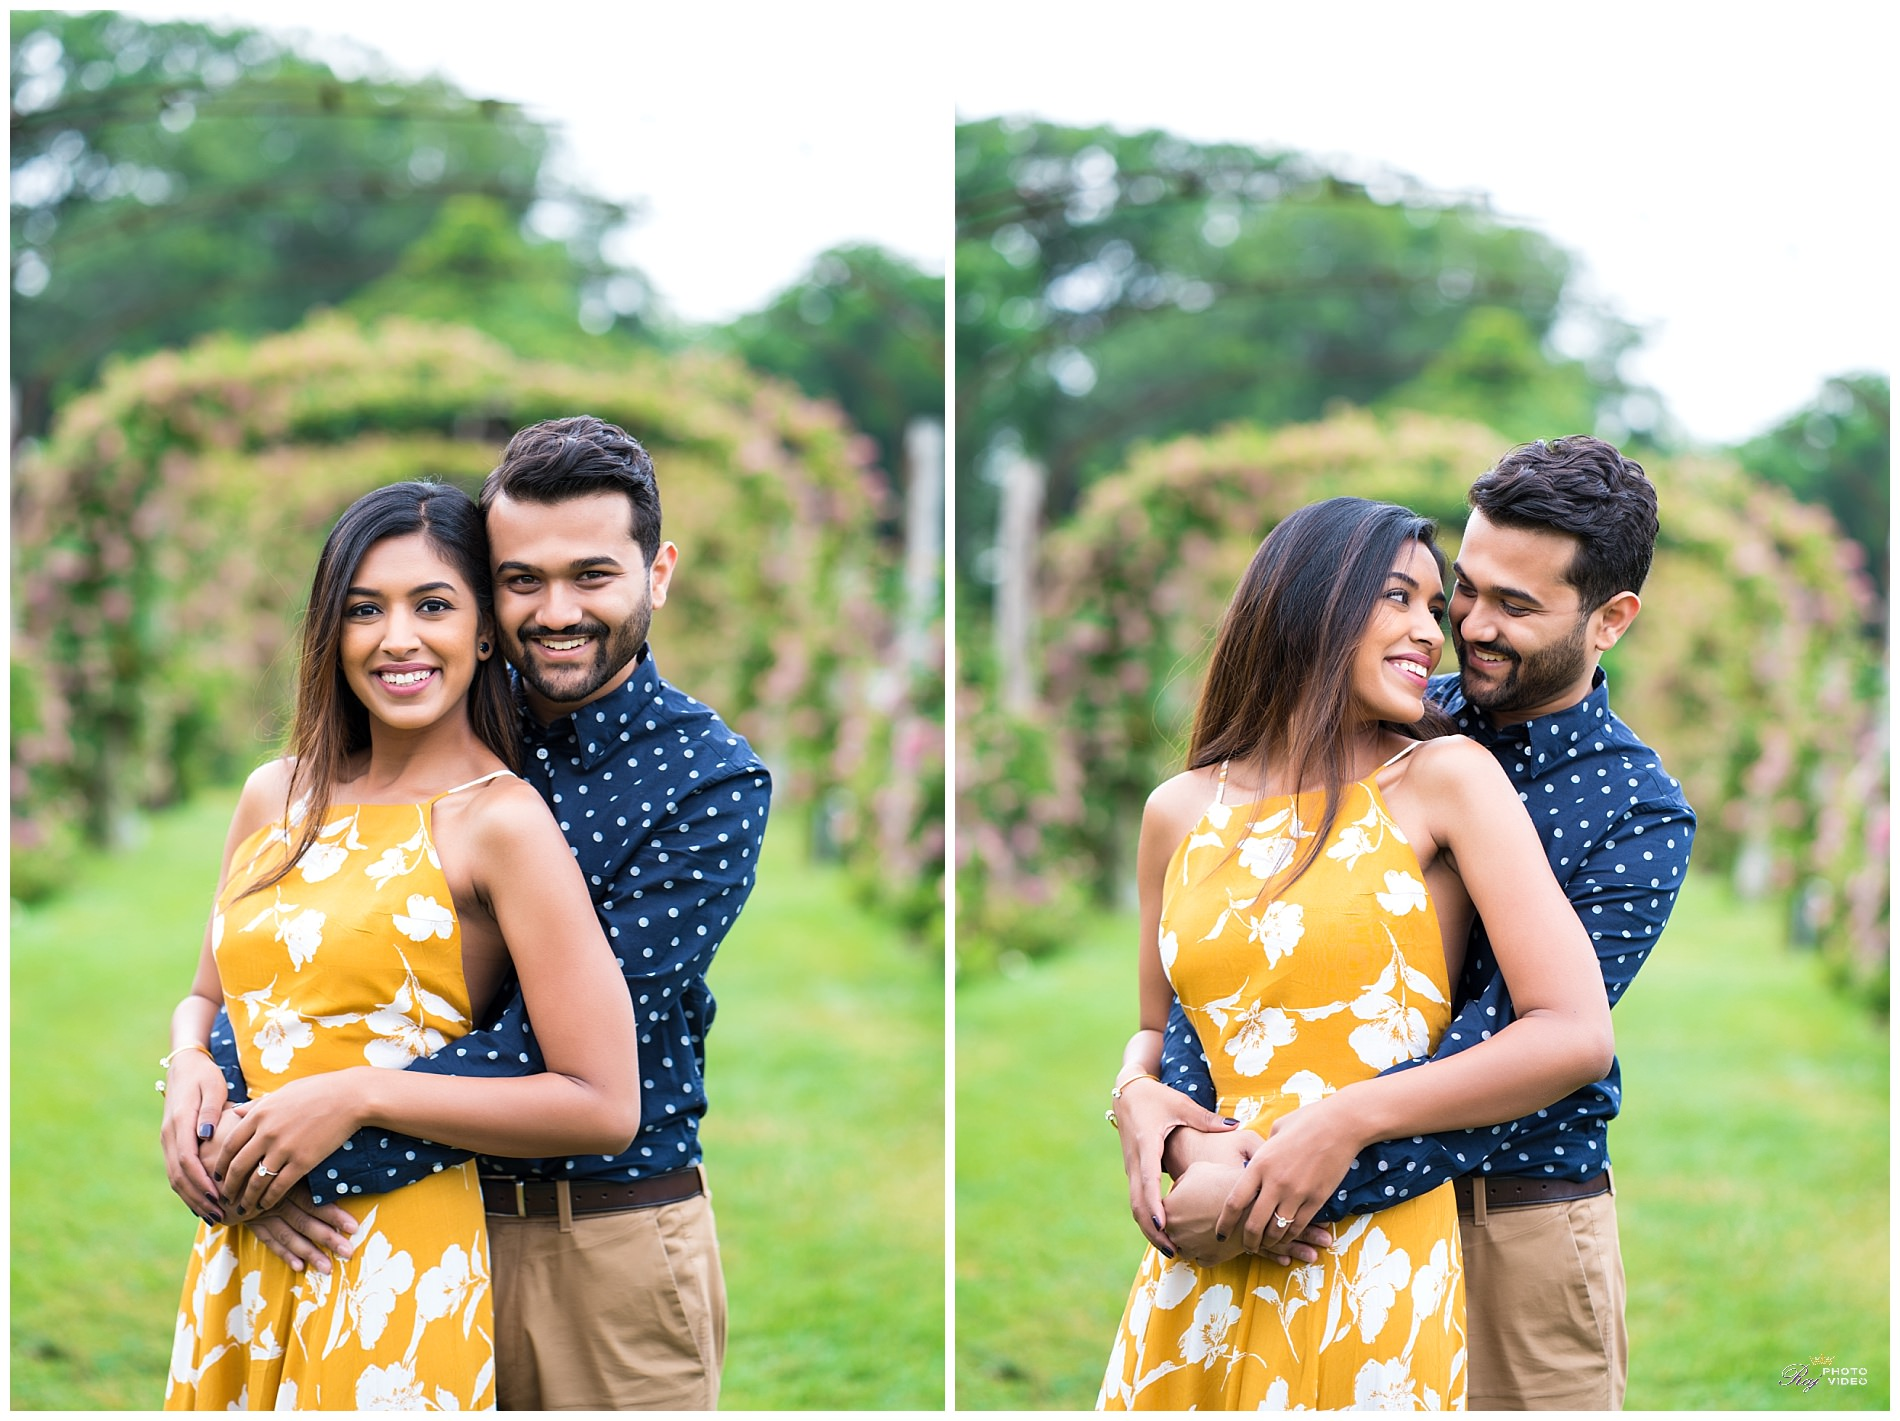 Elizabeth-Park-Rose-Garden-Hartford-CT-Engagement-Shoot-Pratiti-Suraj-1.jpg